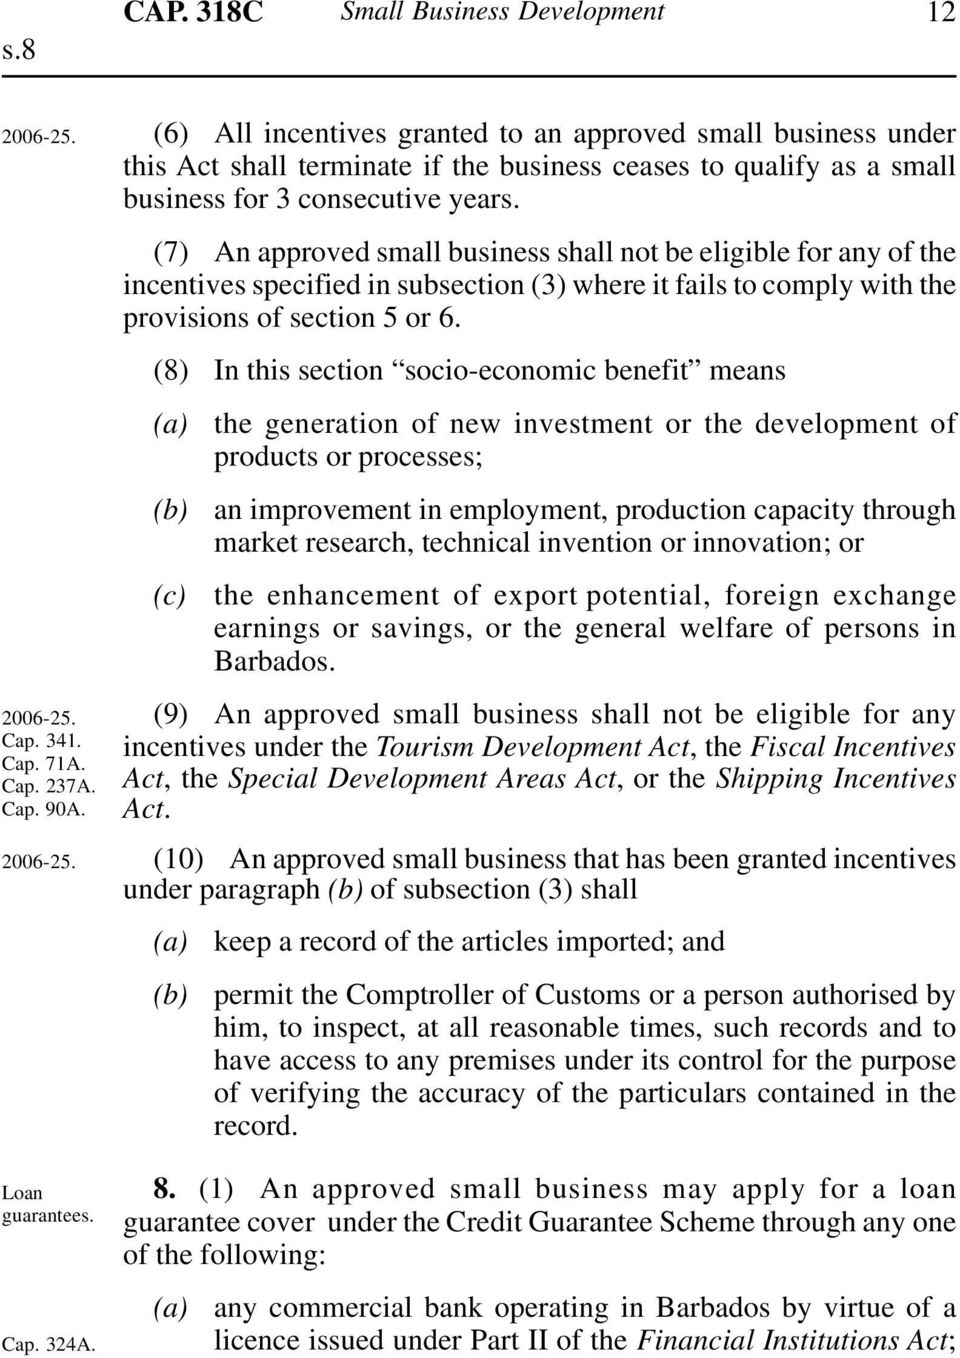 (7) An approved small business shall not be eligible for any of the incentives specified in subsection (3) where it fails to comply with the provisions of section 5 or 6.